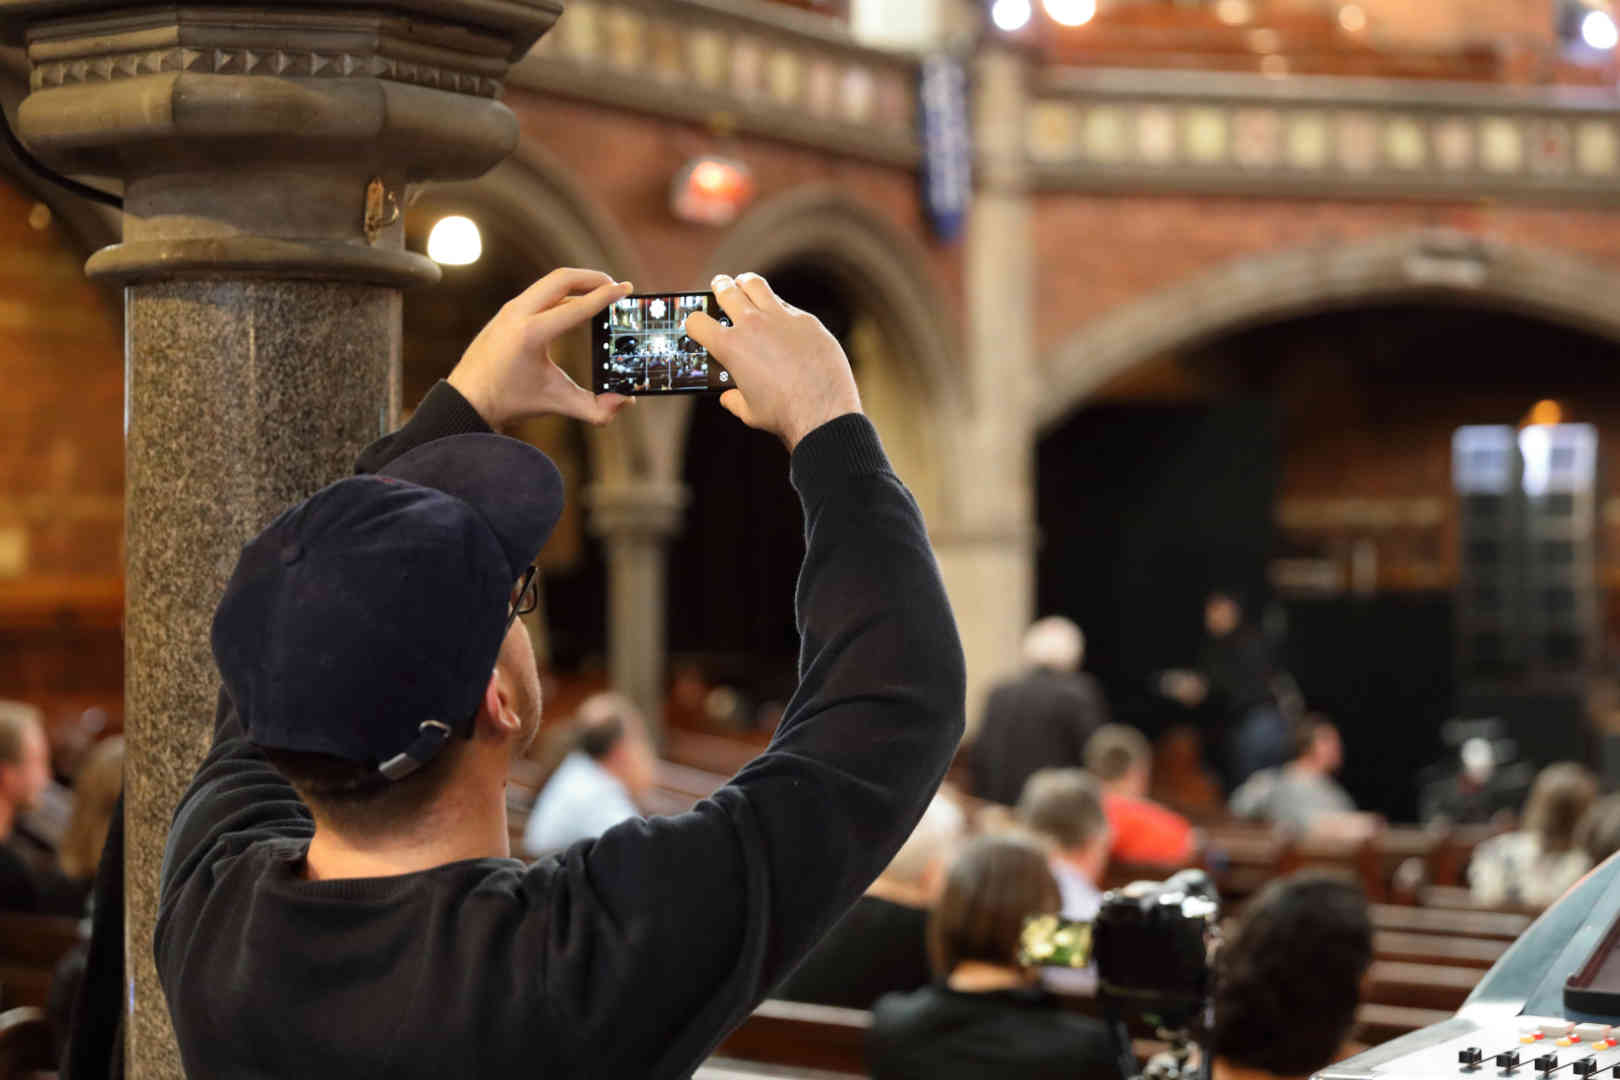 Photo taken at Daylight Music 290 by Daniela Zastrow